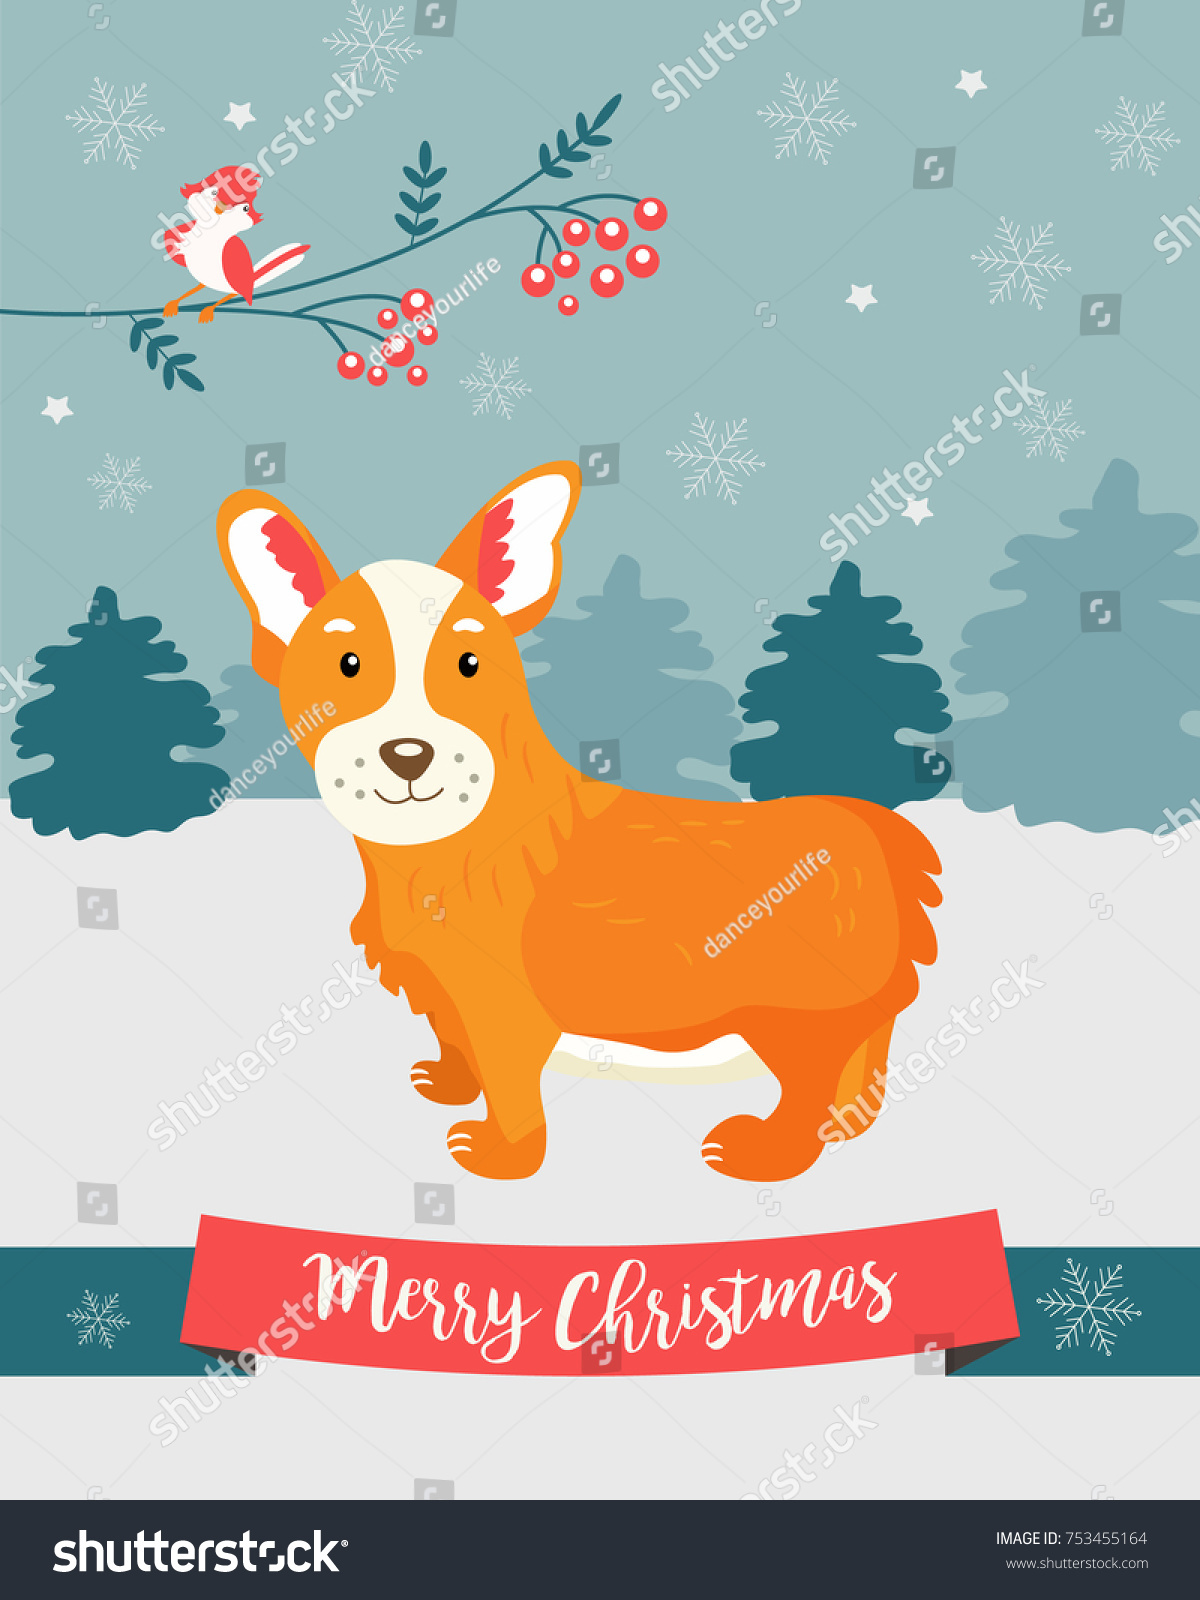 Holiday Greeting Card Cute Corgi Dog Stock Vector Royalty Free